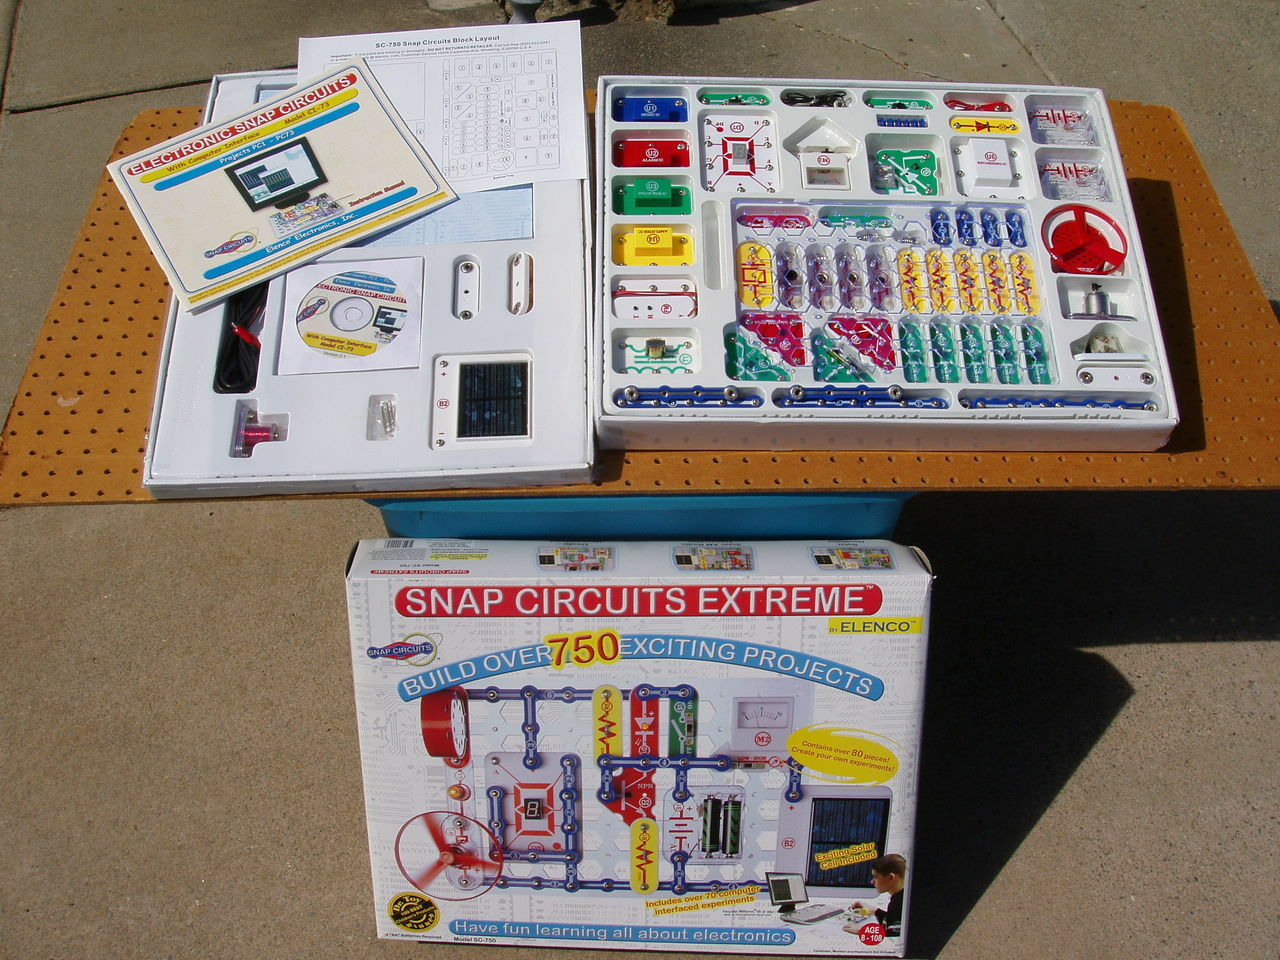 Snap Circuits Extreme Sc 750 Electronics Discovery Kit Elenco Circuit Inc